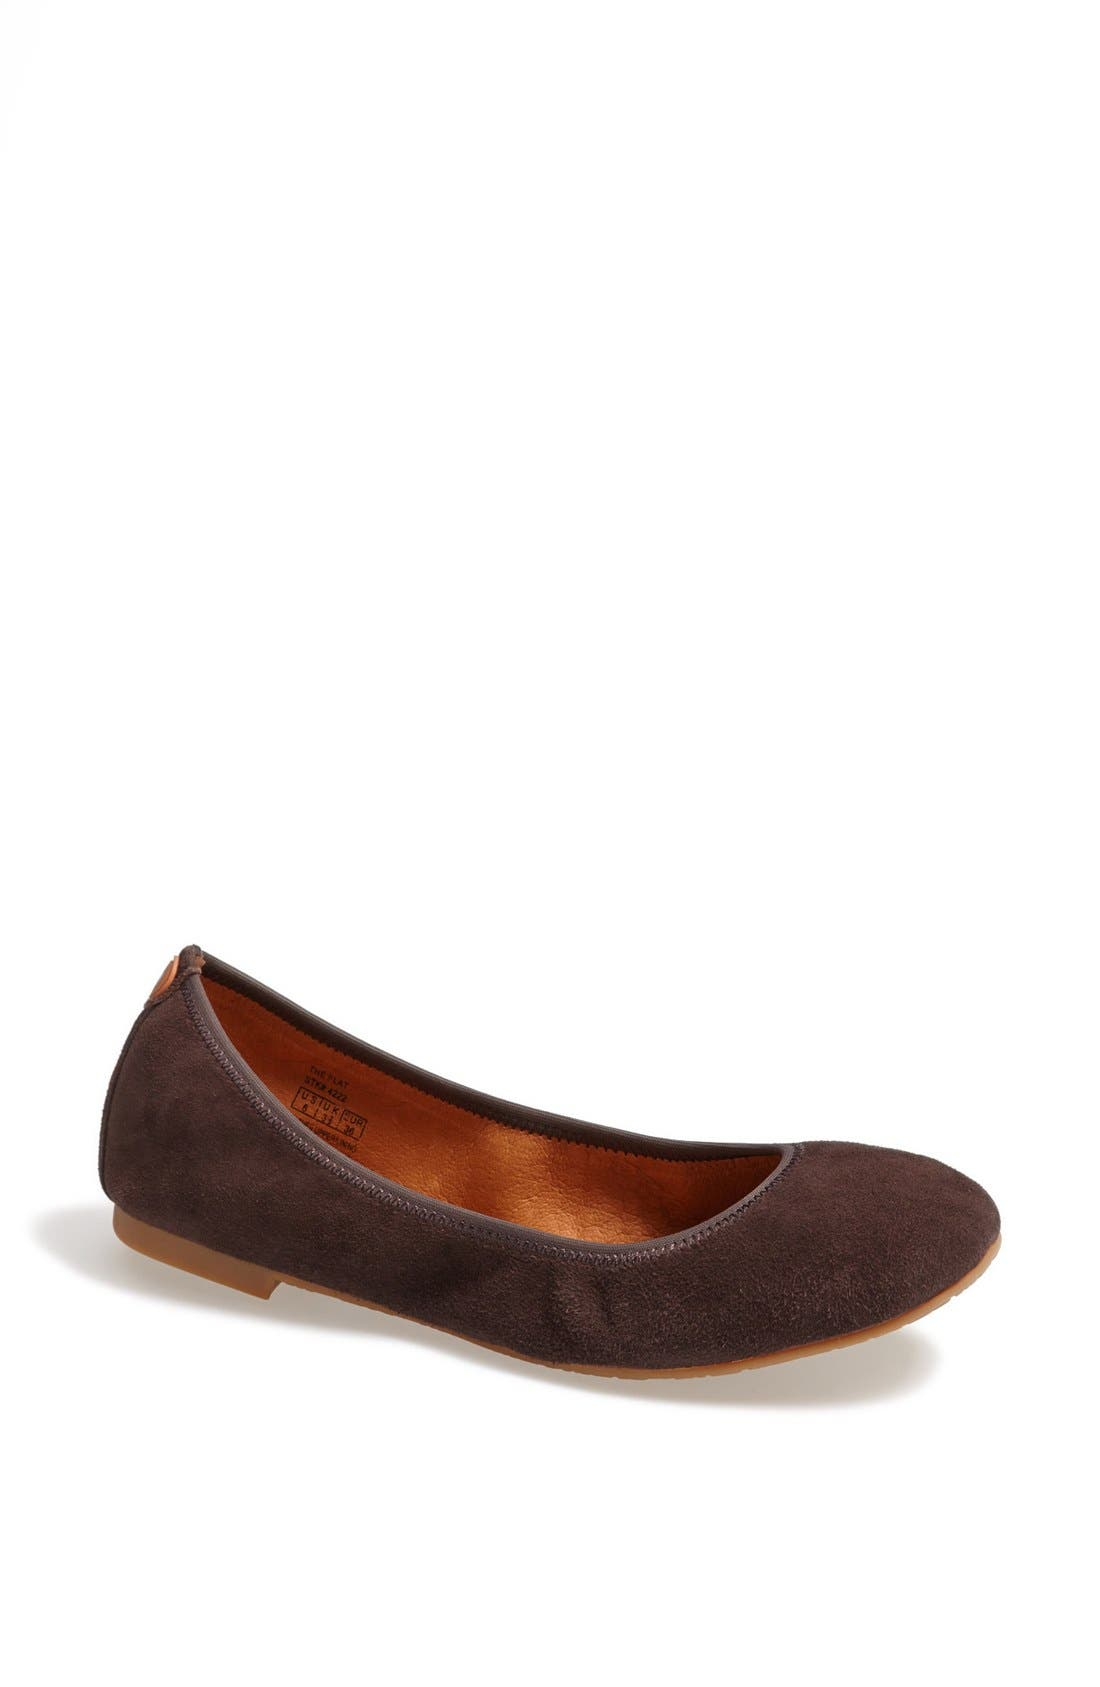 Alternate Image 1 Selected - Juil 'The Flat' Earthing Suede Ballet Flat